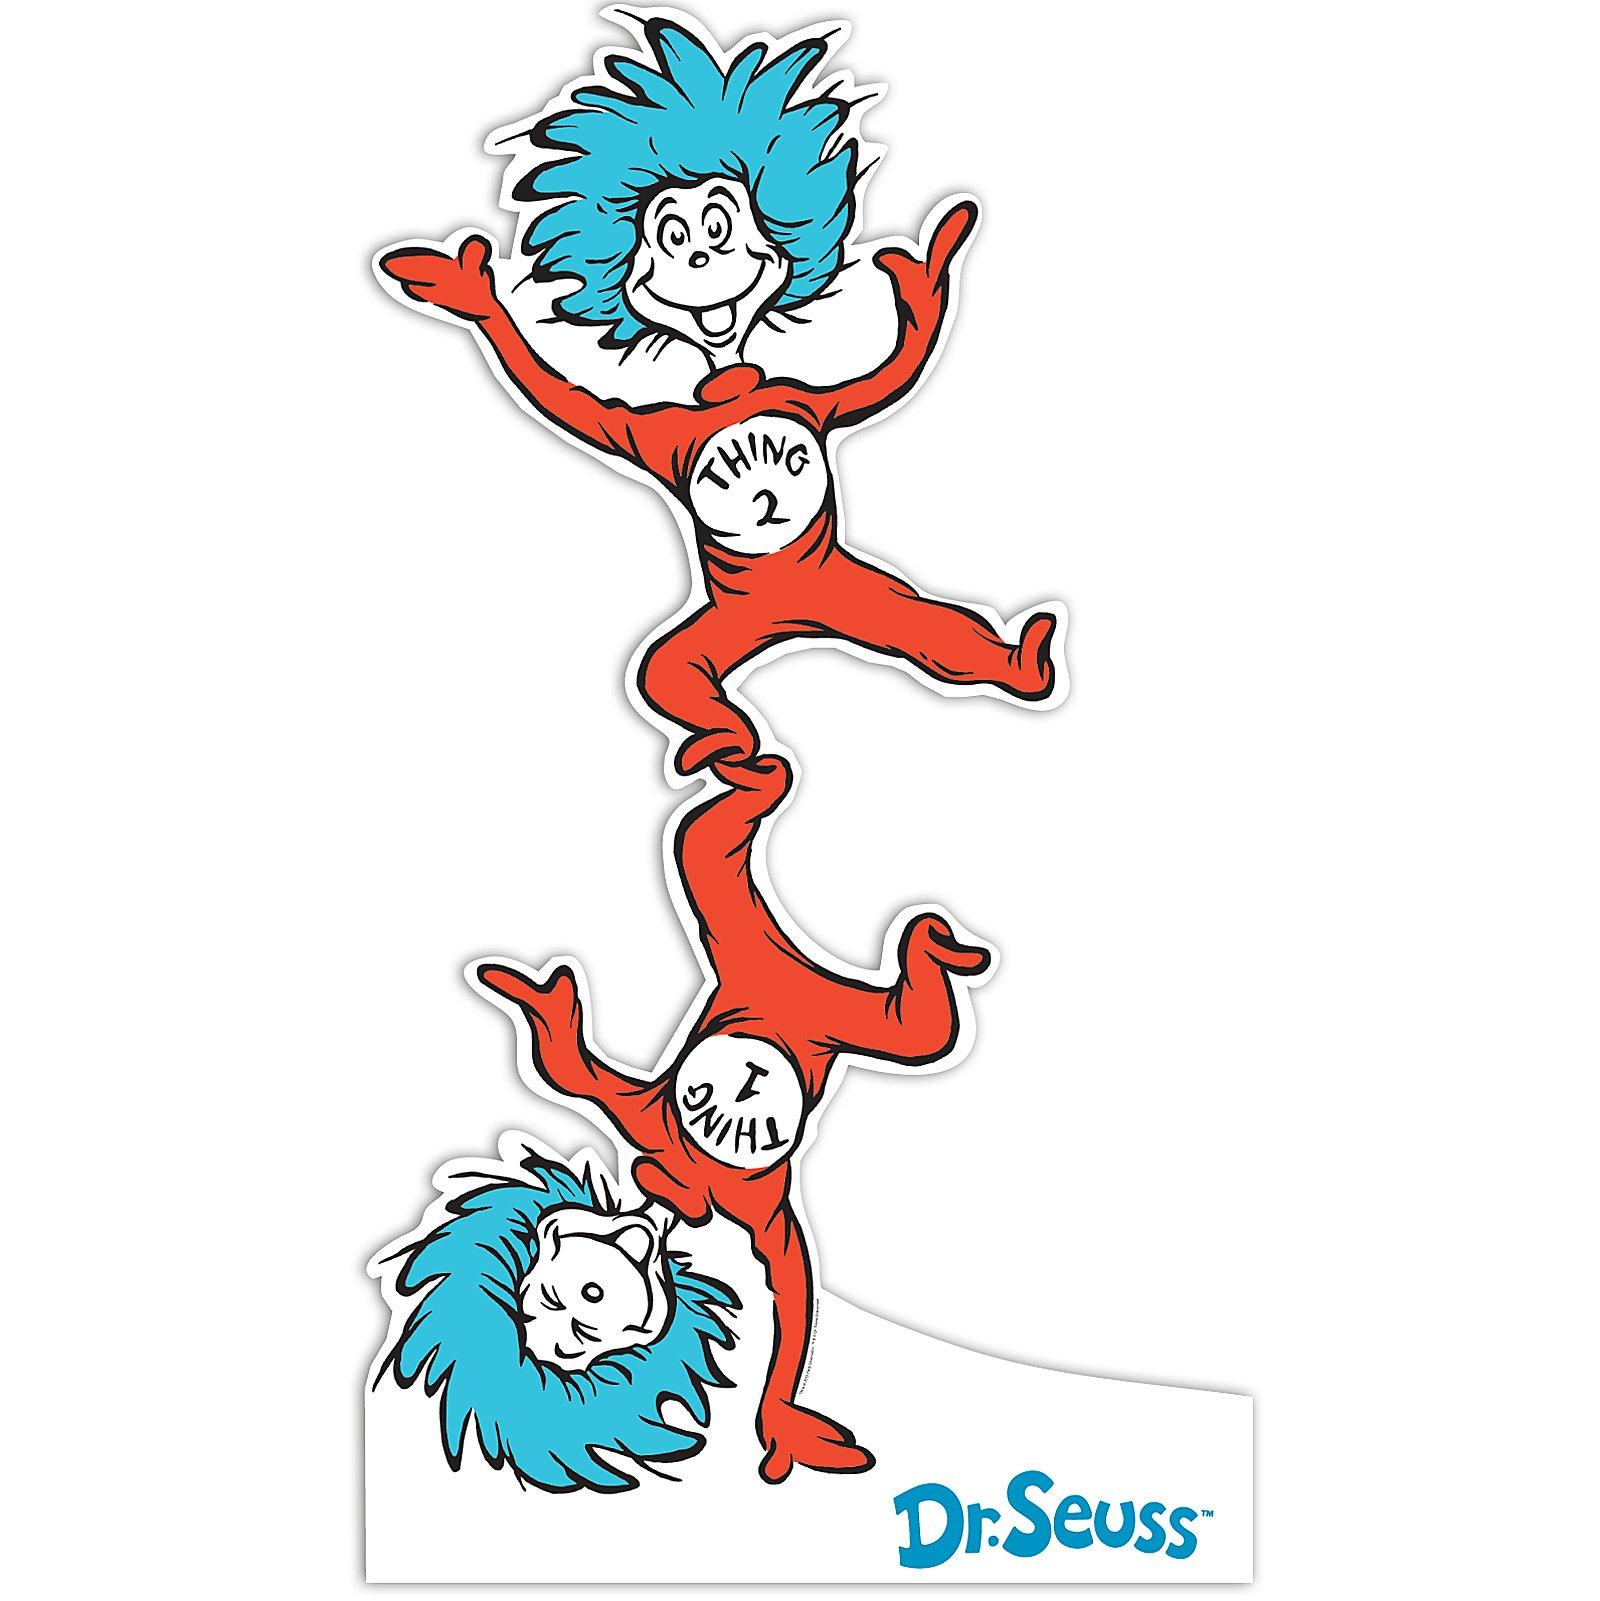 dr seuss coloring pages thing 1 and thing 2 clipart Thing Stands Thing Hand and Clip Art One Two Doing Black and White One and Thing Two Thing